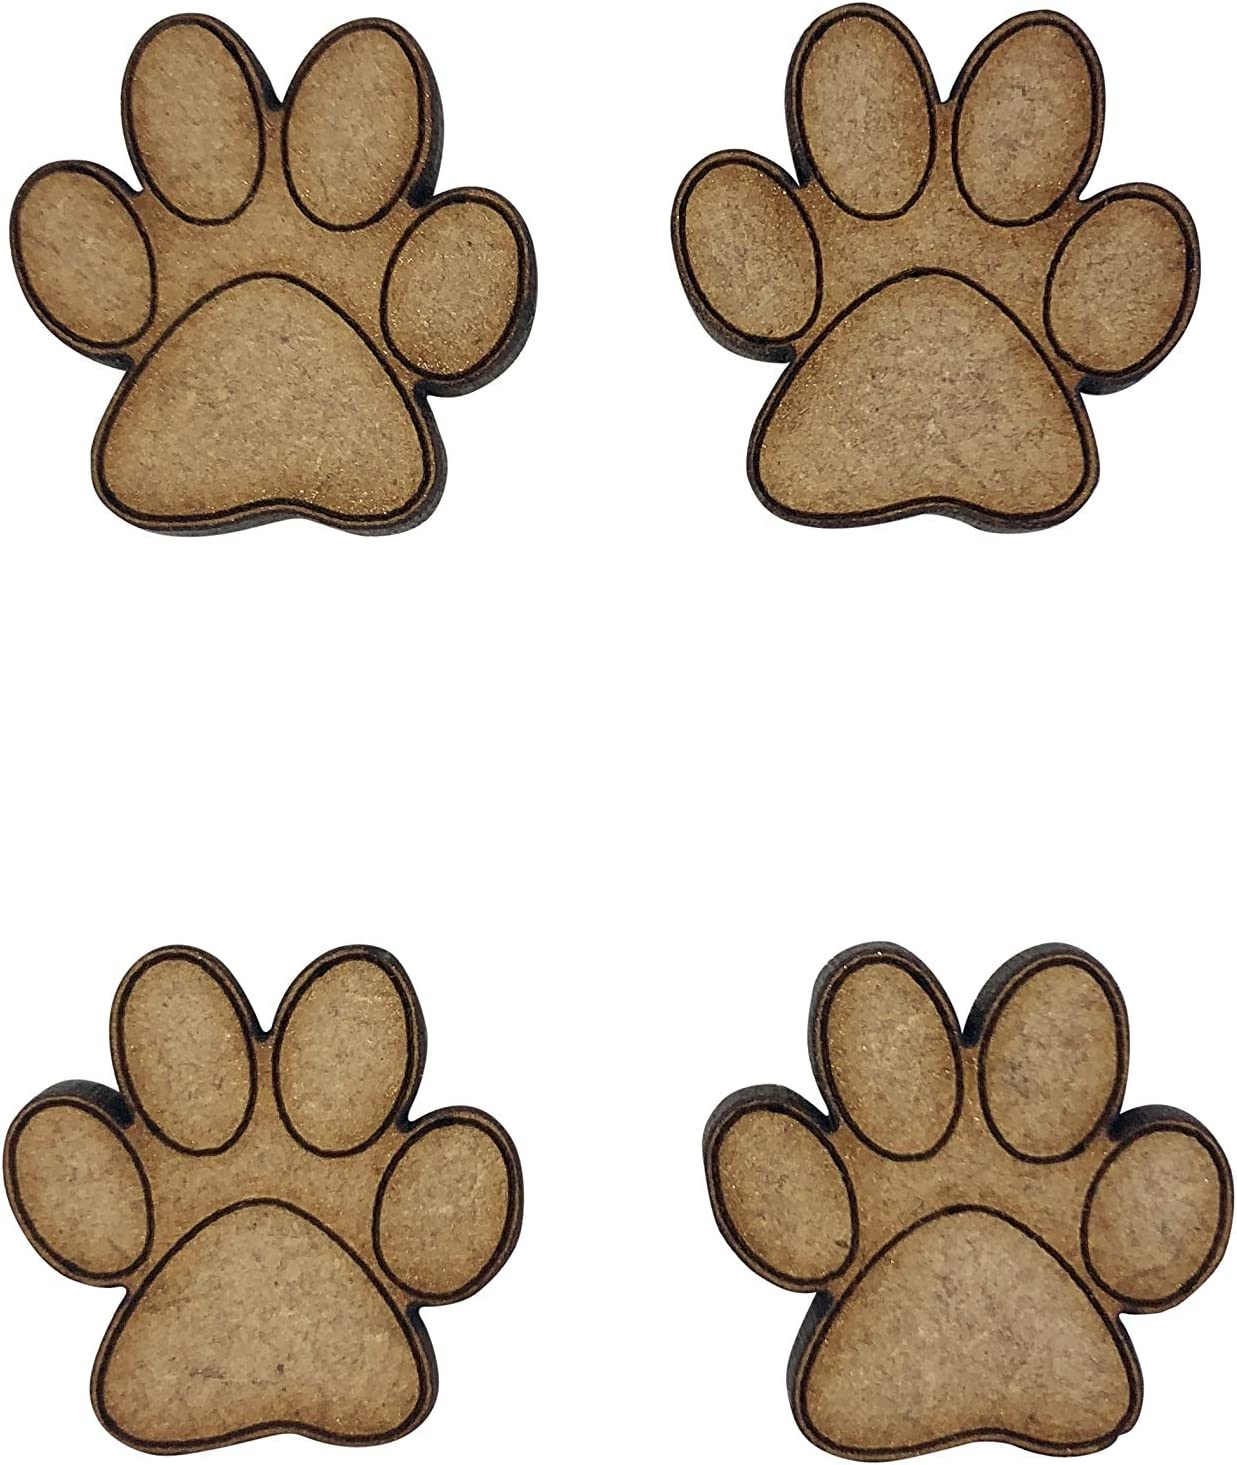 laser cut 3mm mdf embellishments decoupage, wooden craft DOG CAT PAW shapes